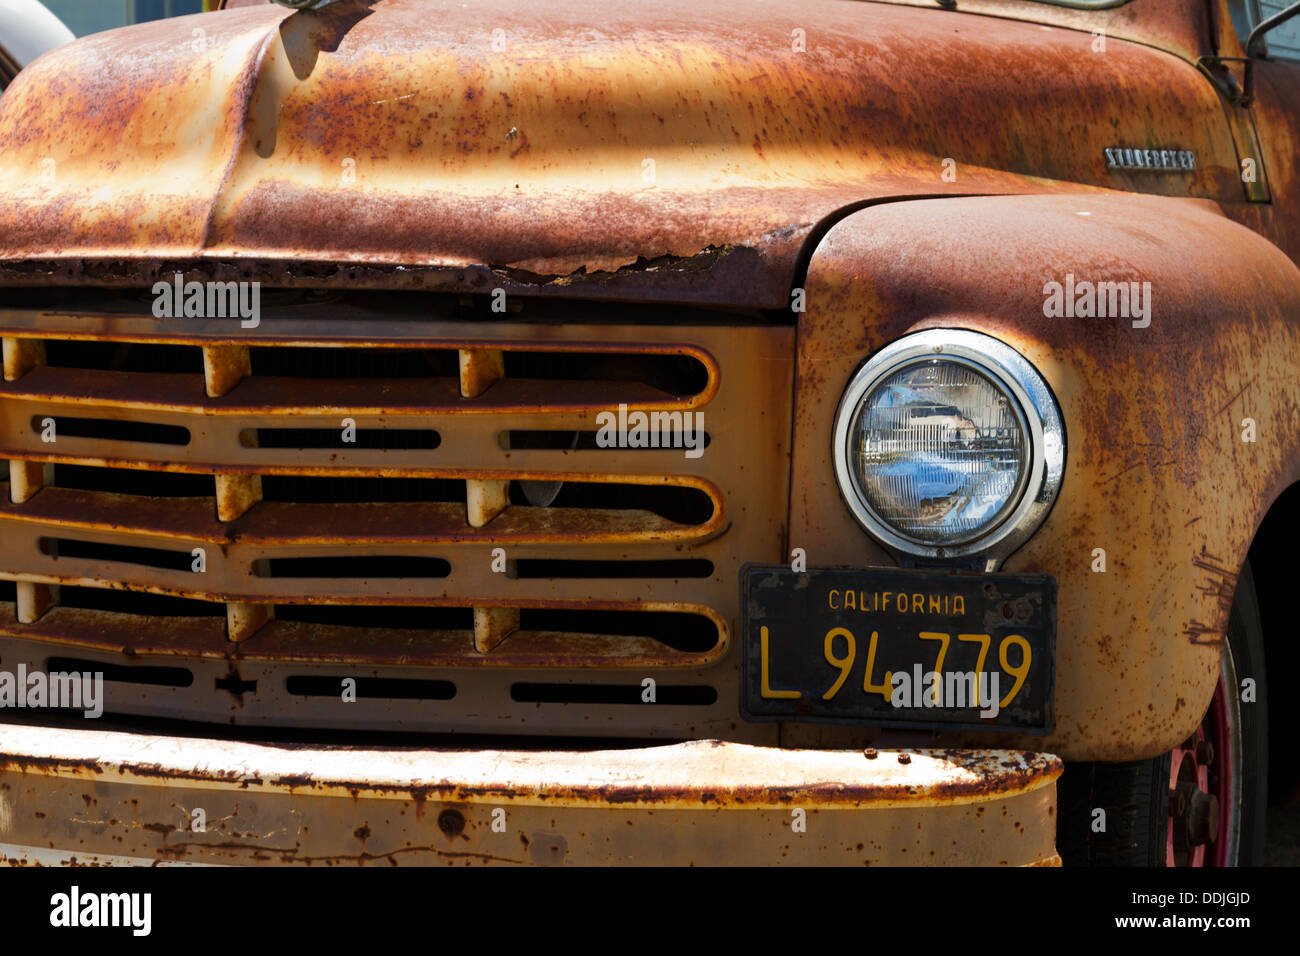 California License Plate High Resolution Stock Photography And Images Alamy,Experimental Study Design Types